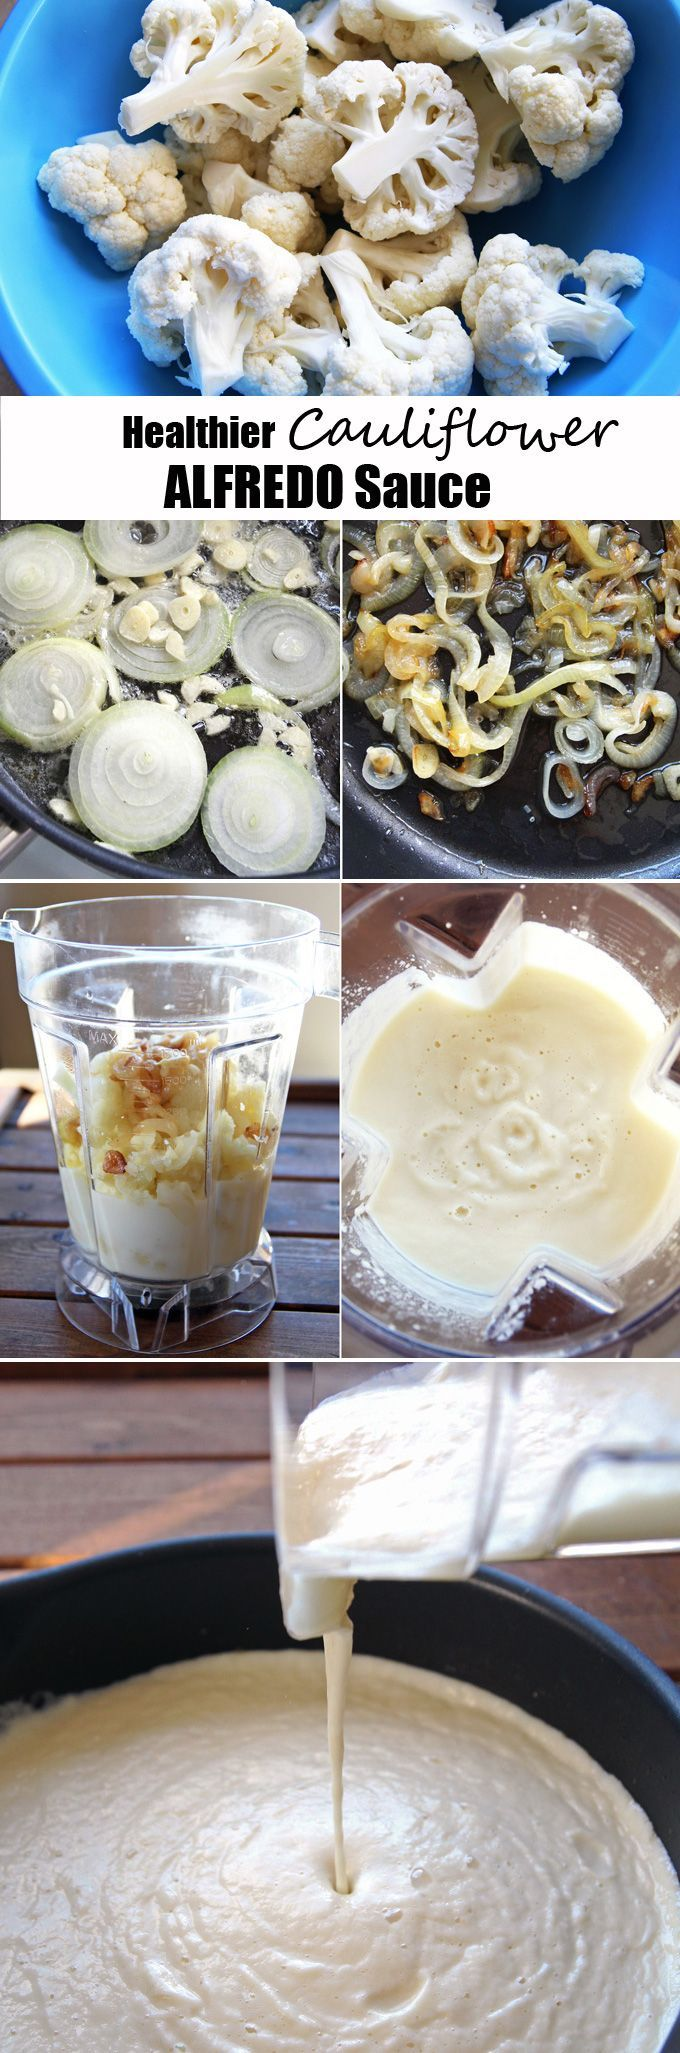 Healthier Alfredo Sauce made with Cauliflower - a great way to sneak extra veggies into your meals. Can easily be made #dairyfree